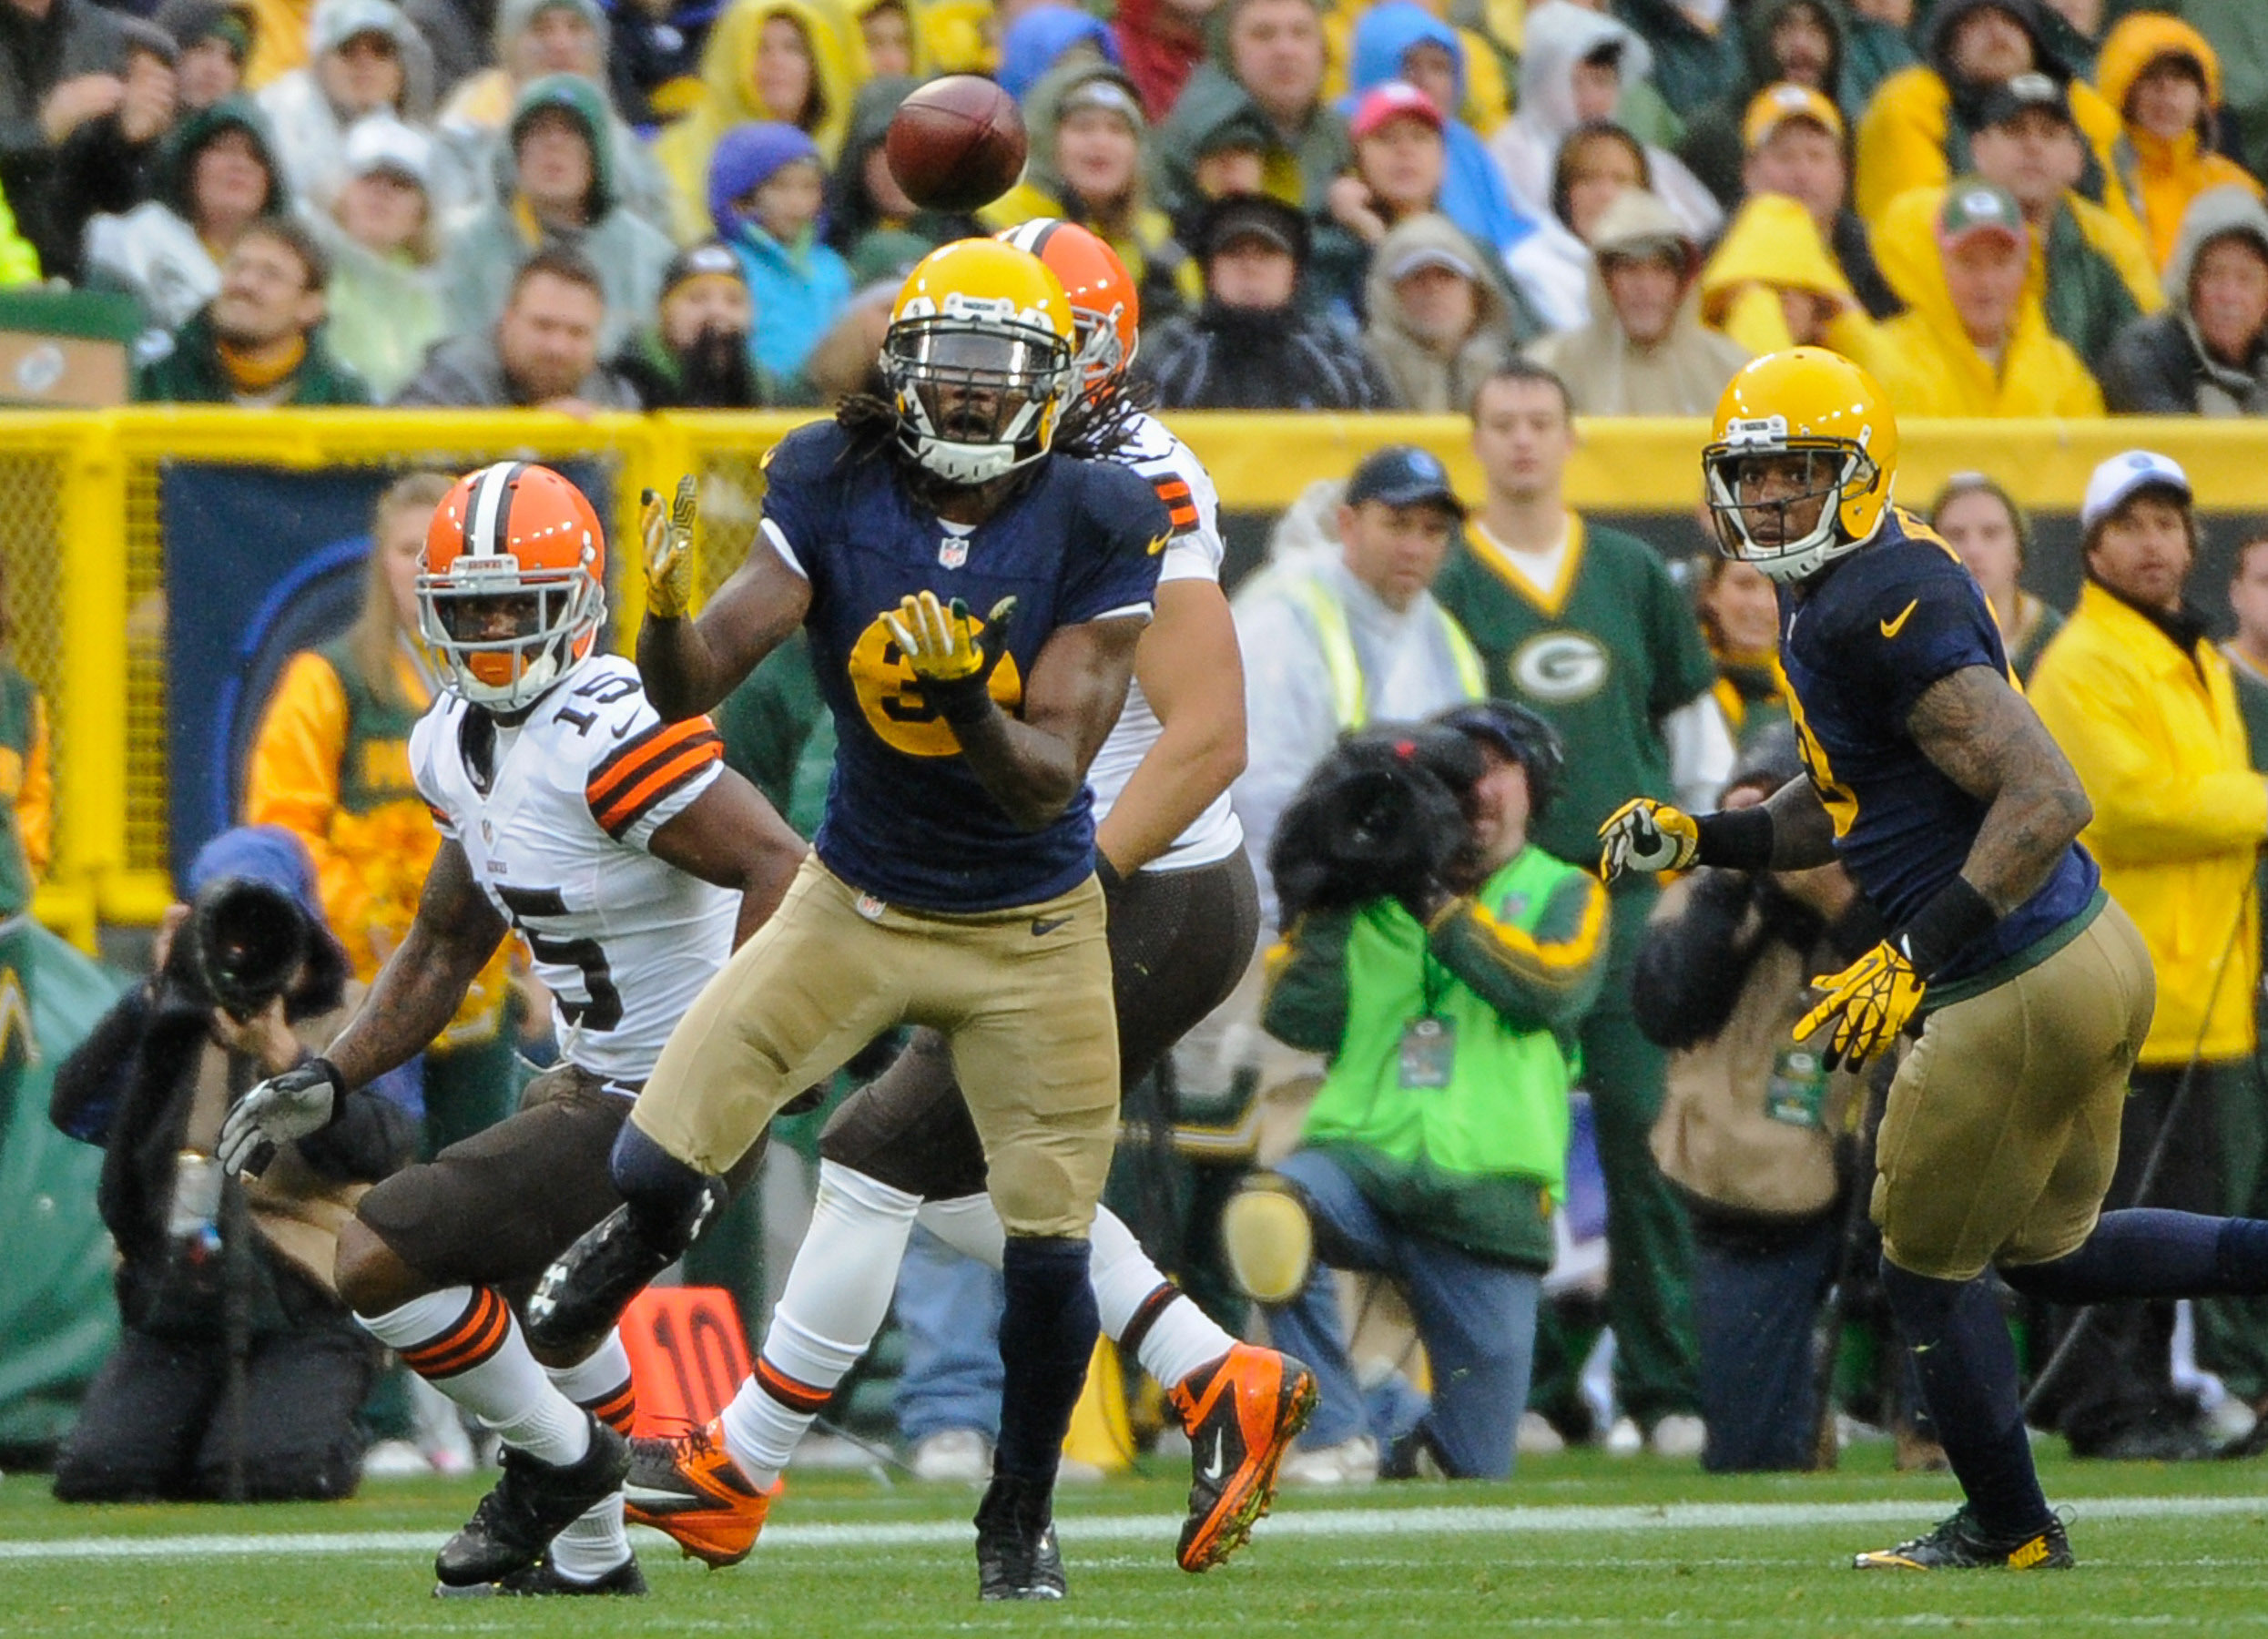 7504148-nfl-cleveland-browns-at-green-bay-packers